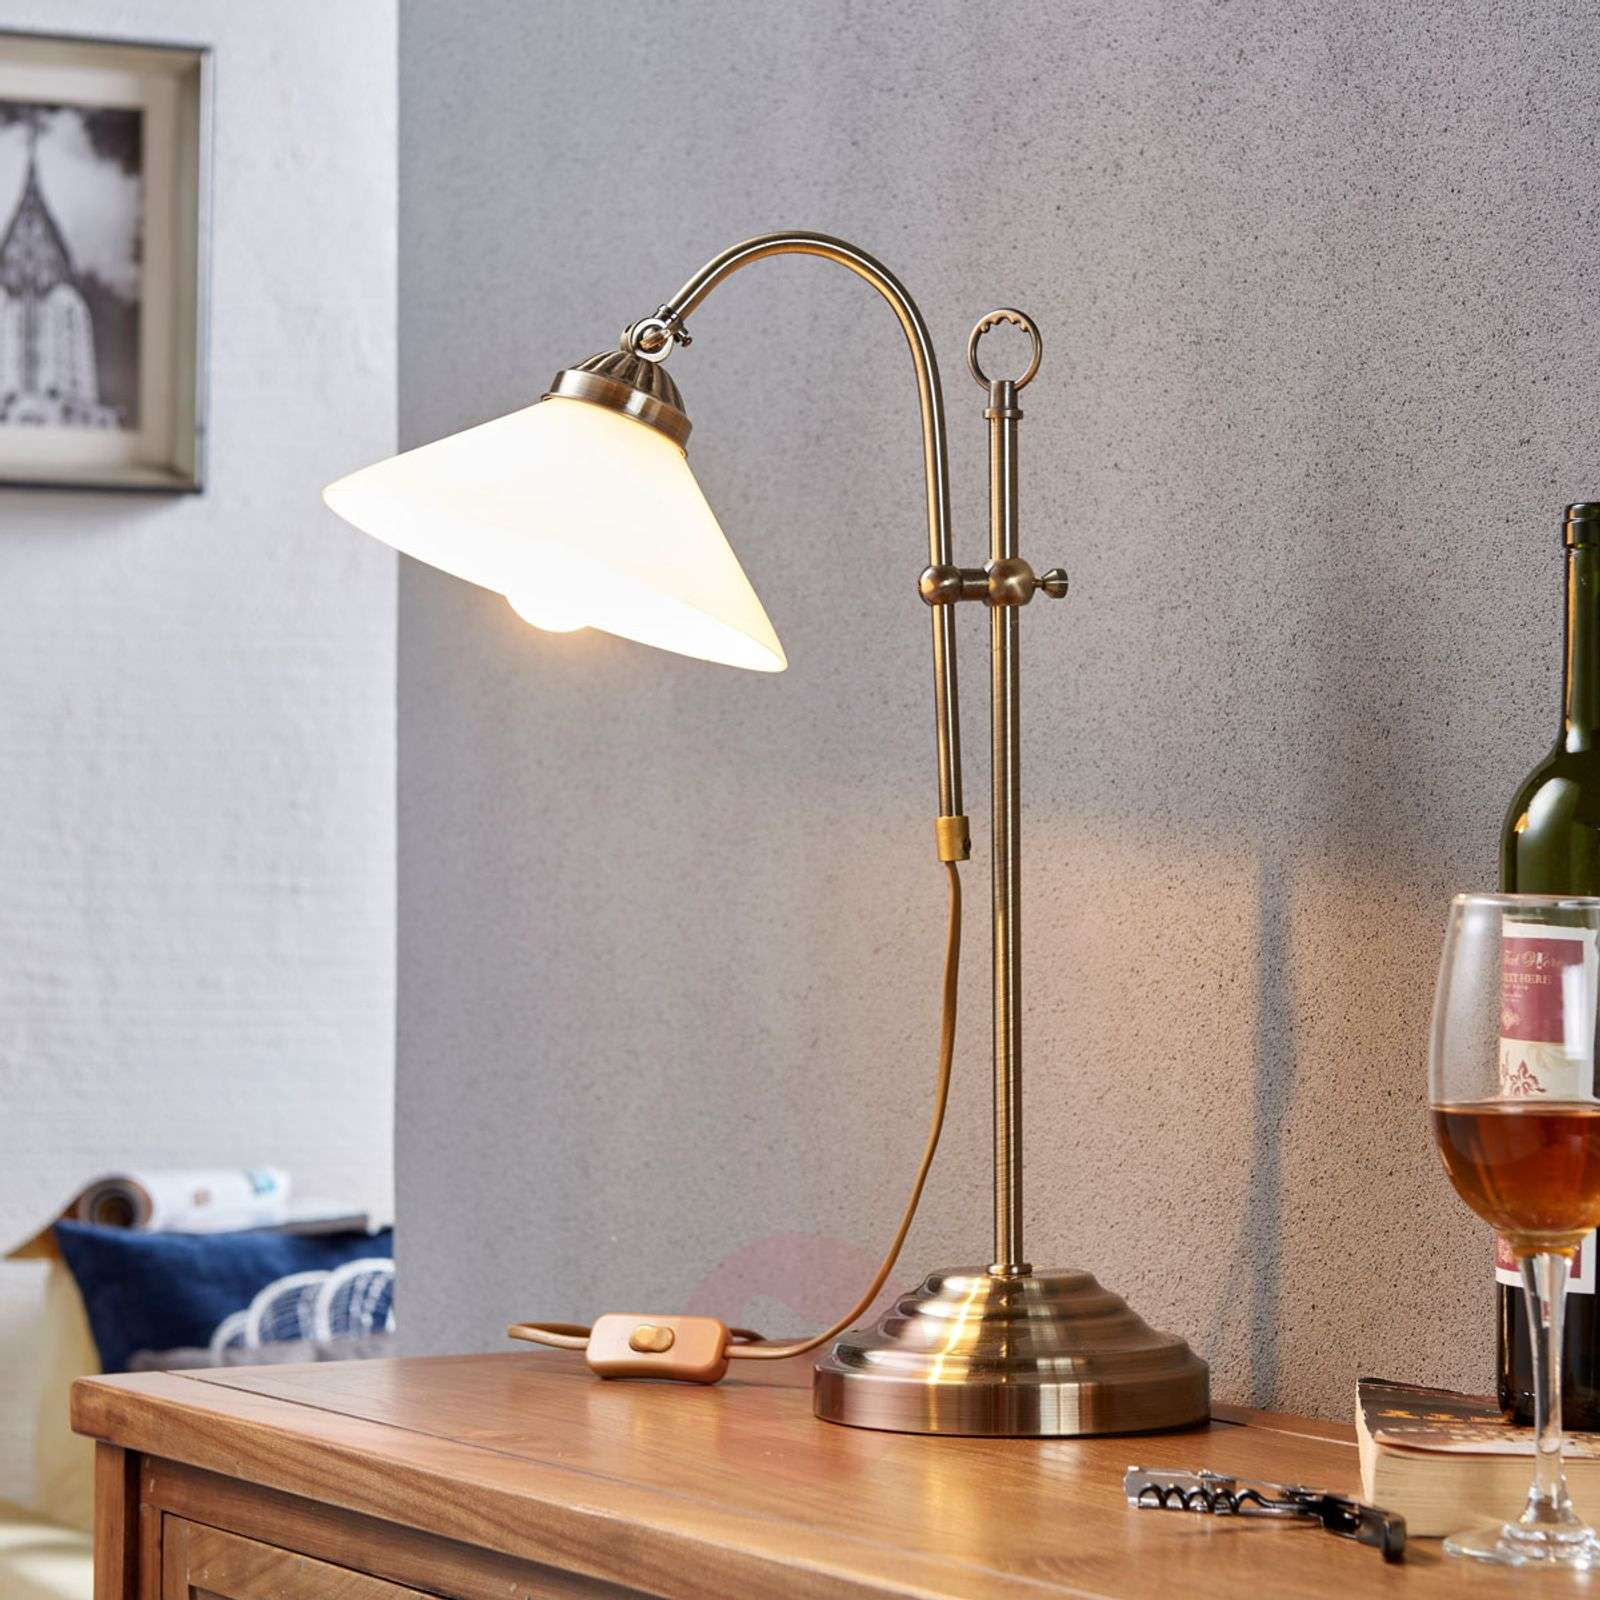 Classic table lamp Otis in antique brass-9621036-03